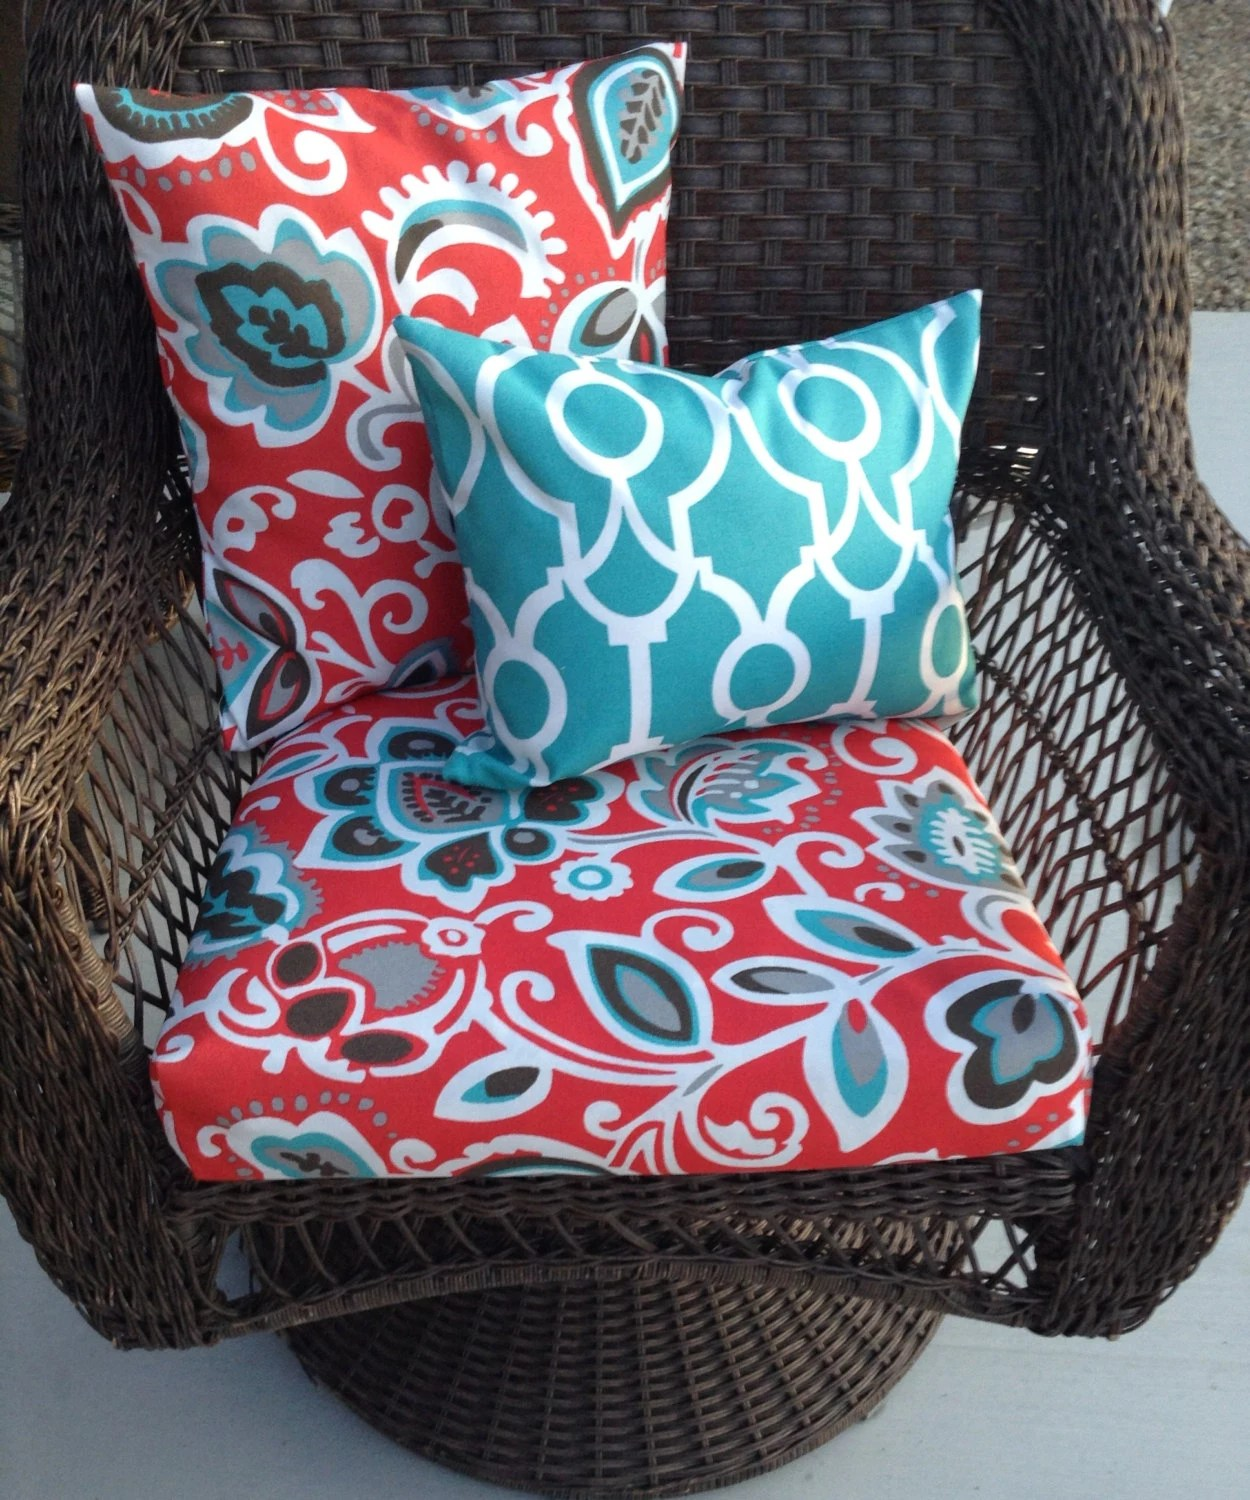 outdoor chair cushion covers cover hire lancashire uk replacement furniture pillow etsy image 0